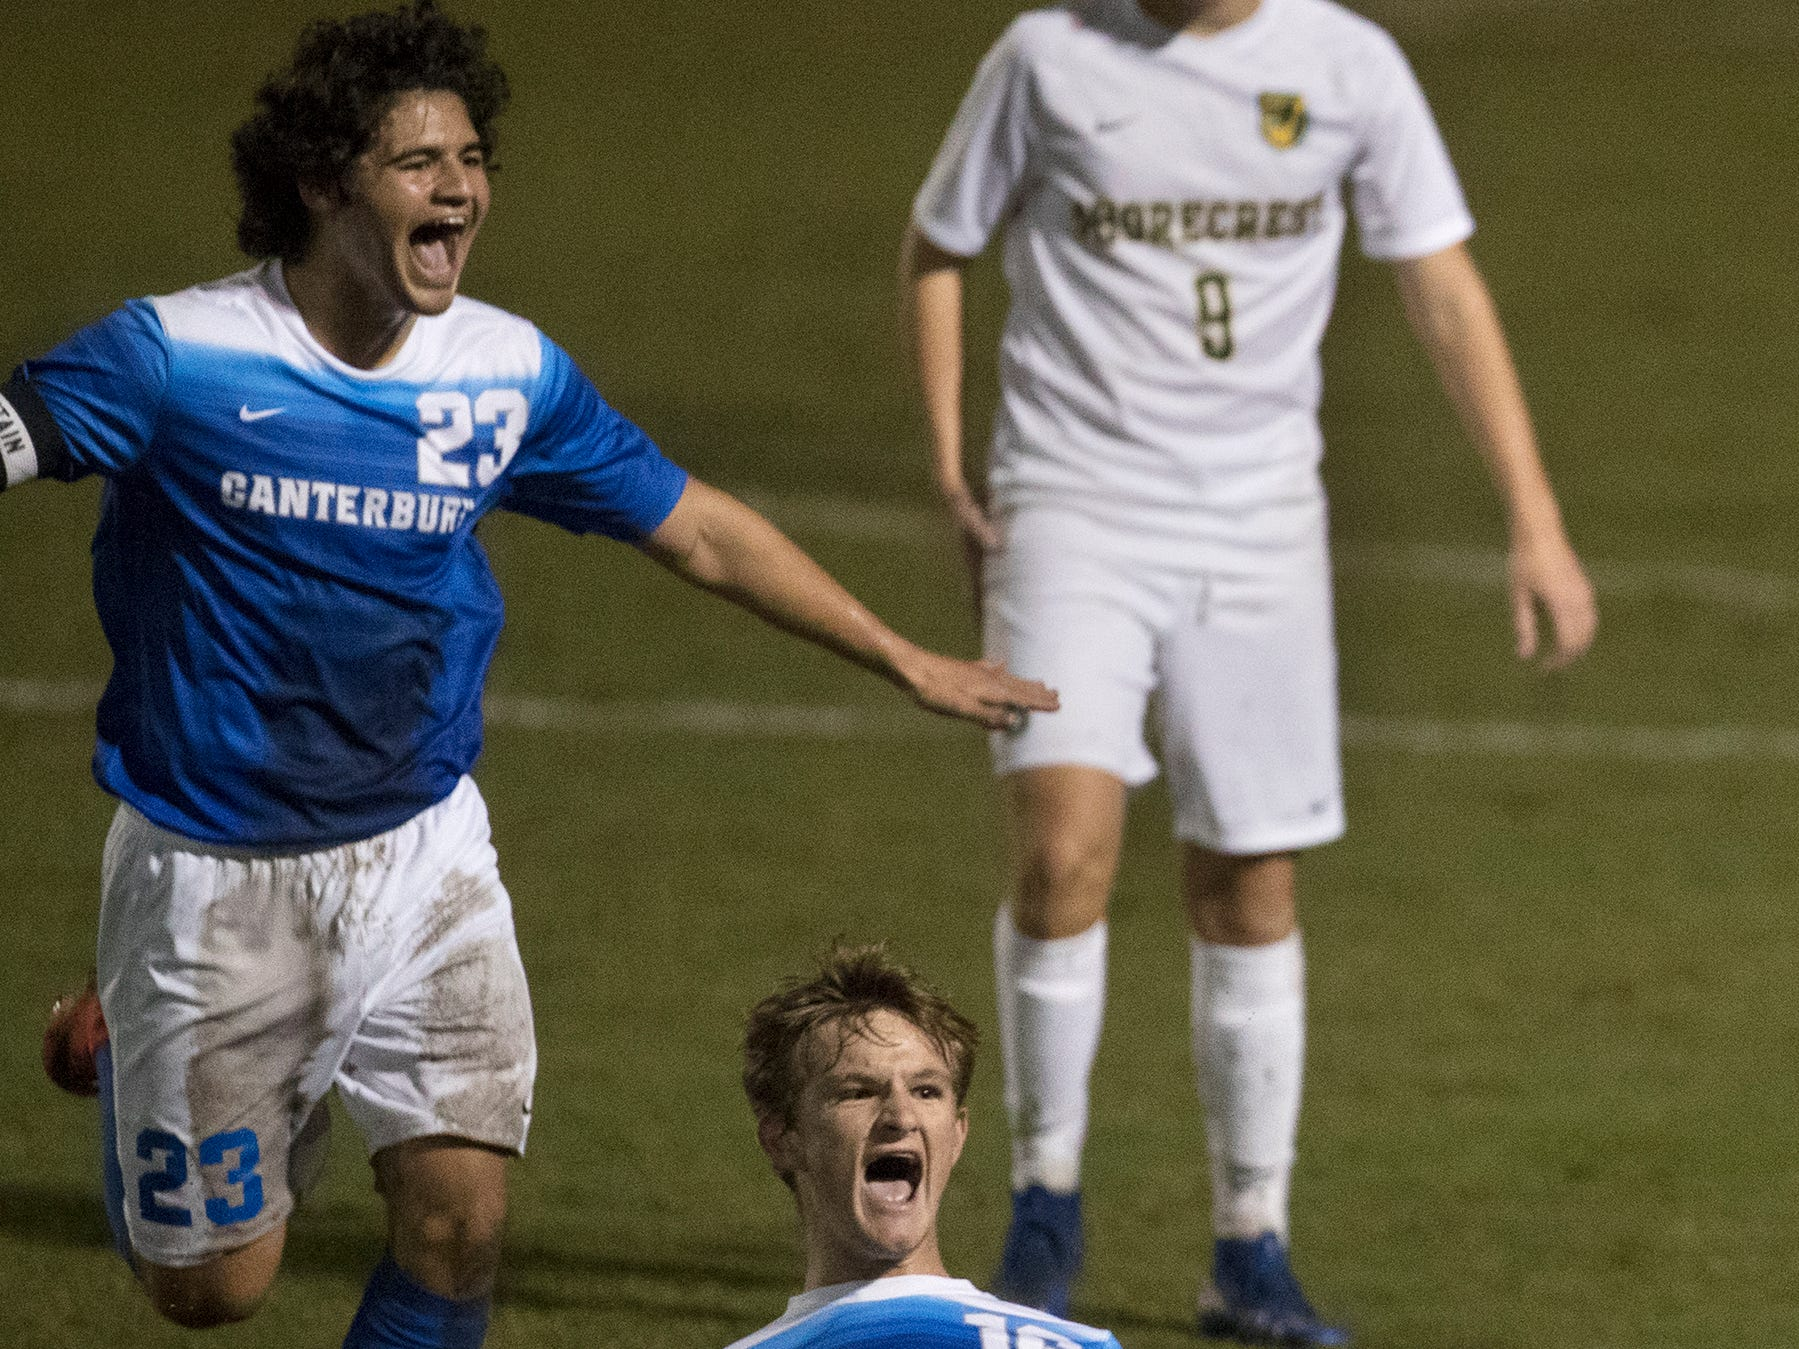 Canterbury School's Patrick Horan, front, and Austin Alley, rear, celebrate a goal against Shorecrest recently in the Class 1A regional soccer final at Canterbury in Fort Myers. Shorecrest beat Canterbury 3-2.